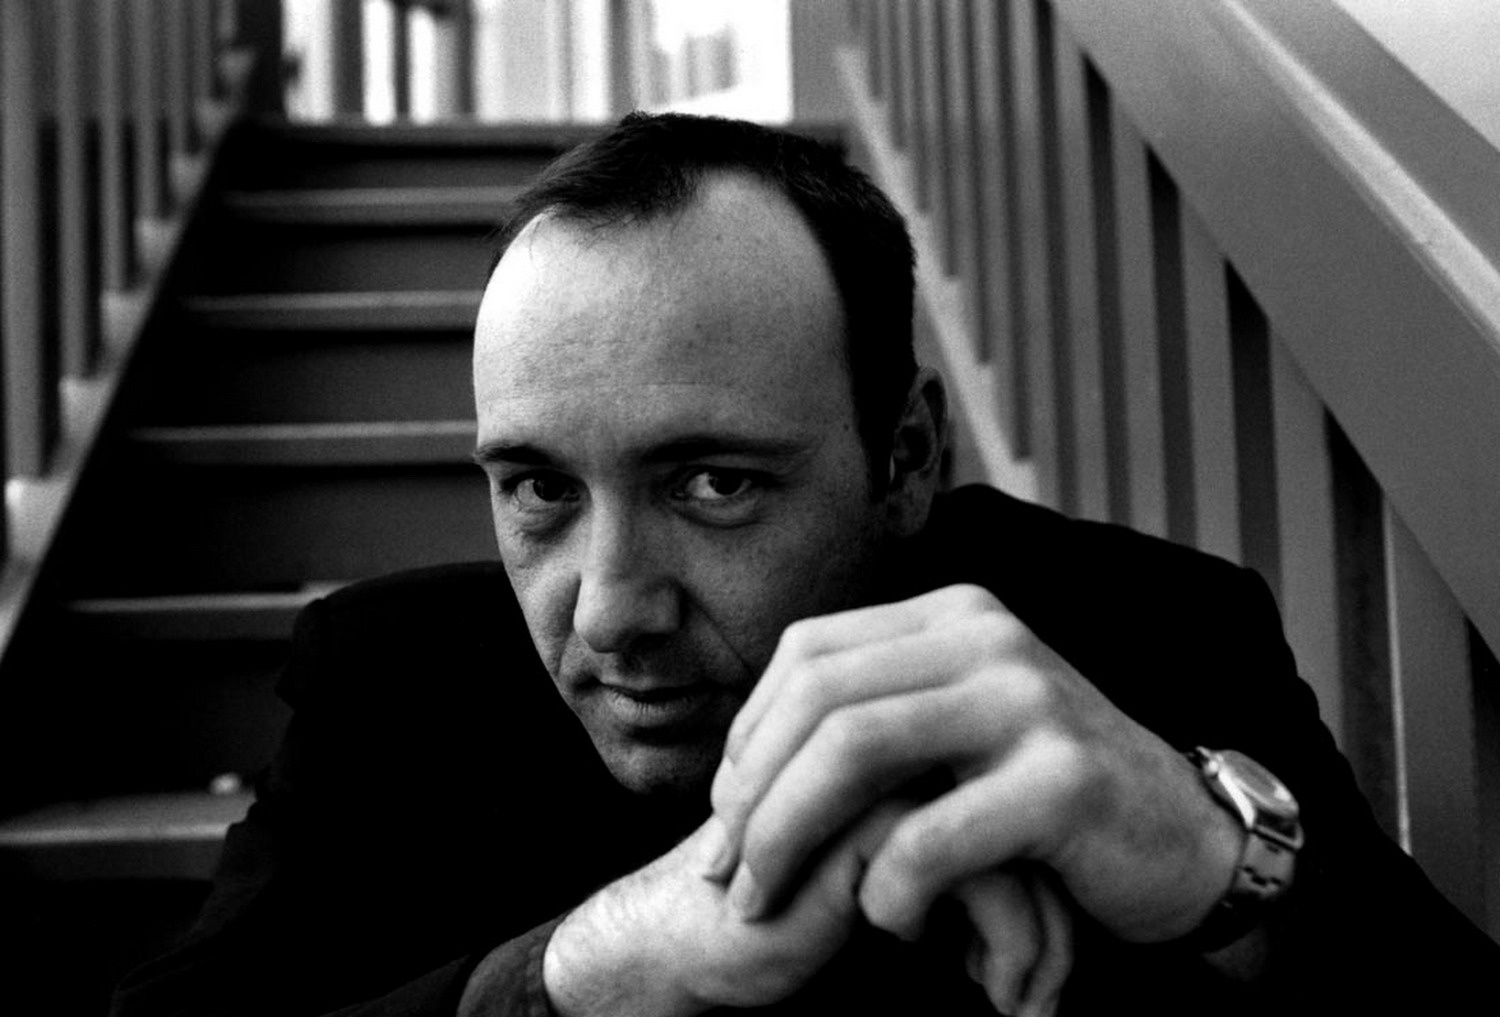 Kevin spacey photo 20 of 65 pics wallpaper photo - Spacey wallpaper ...